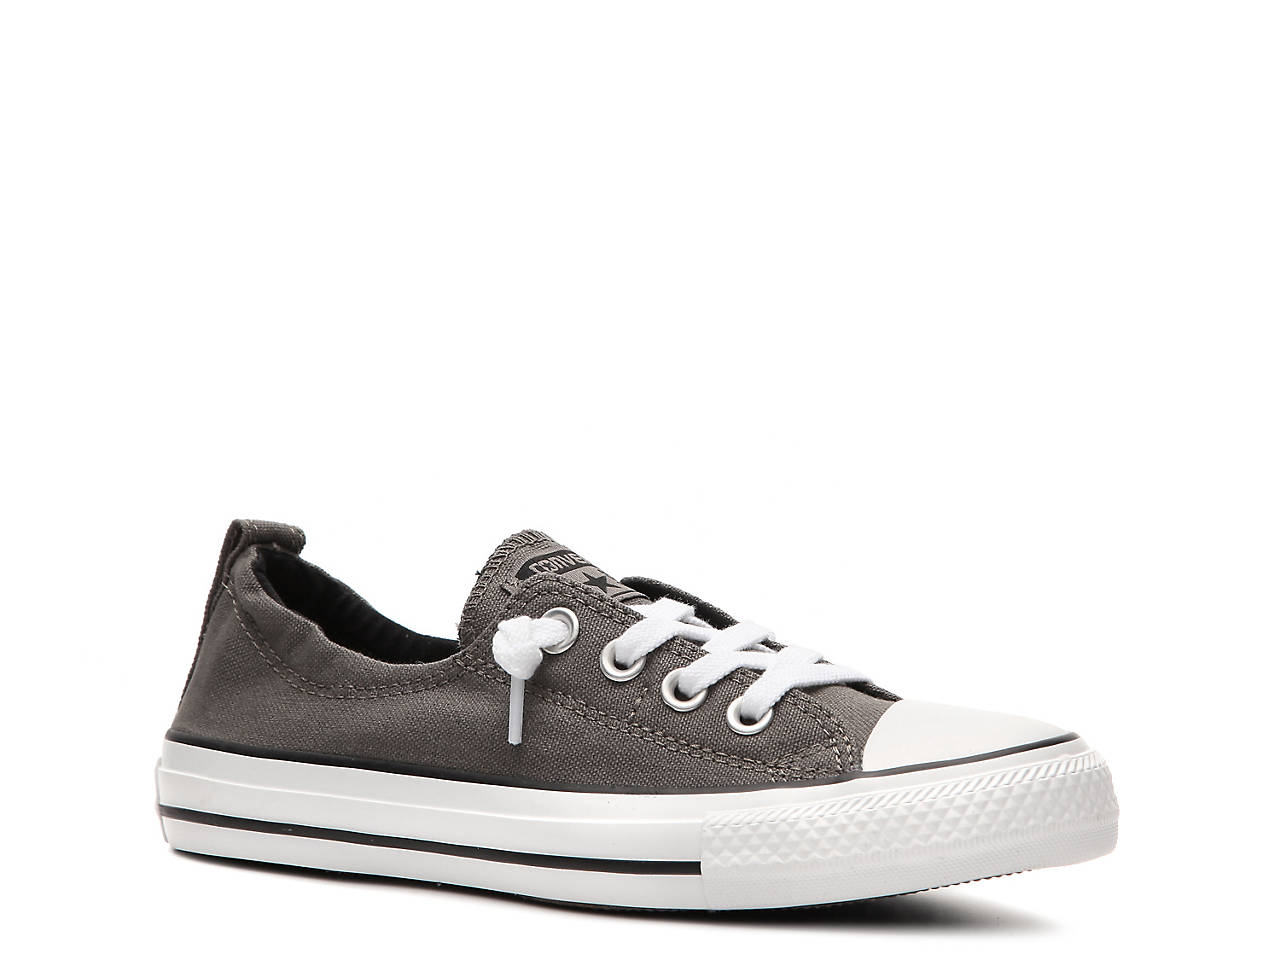 Converse Chuck Taylor All Star Shoreline Slip-On Sneaker - Women s ... b346584d0